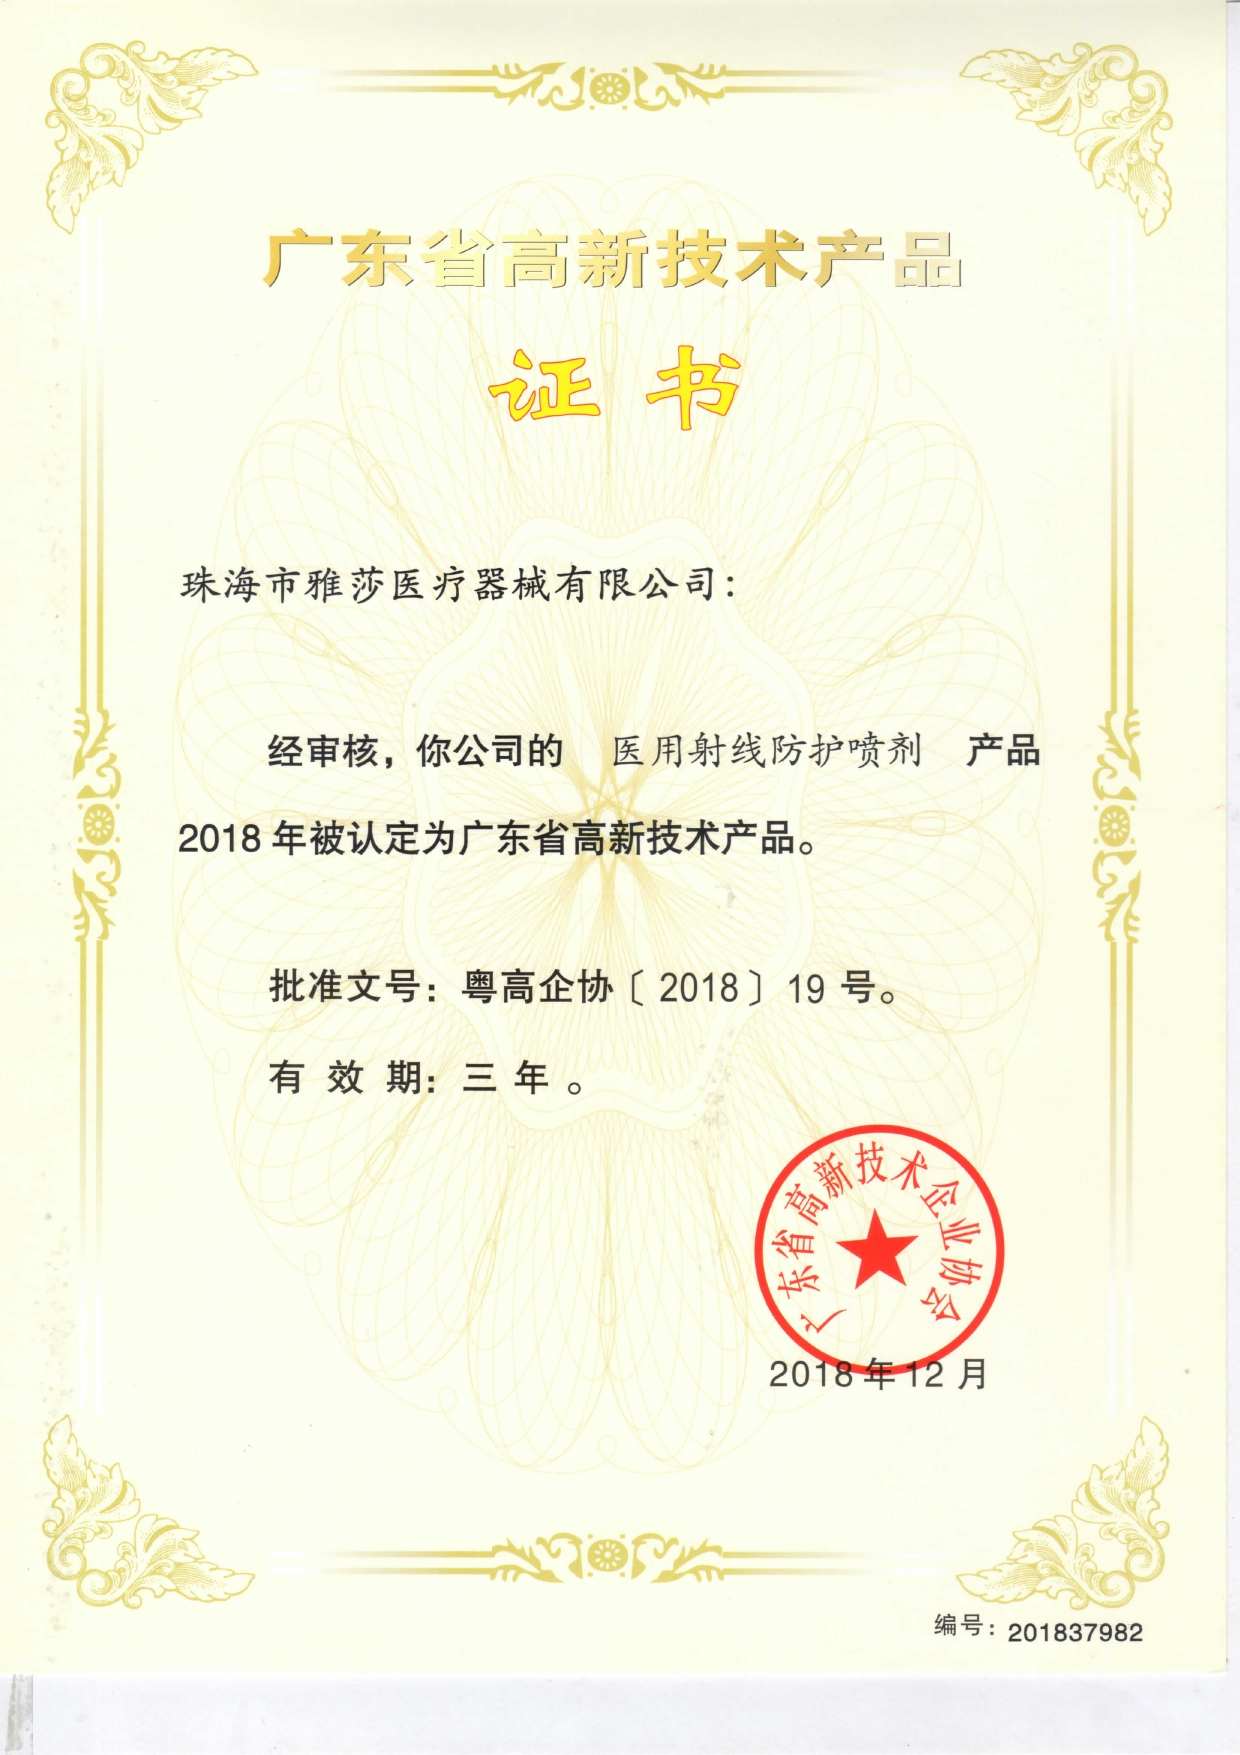 (SOD Toner Spray) Certificate of Guangdong Province New High-Tech Product